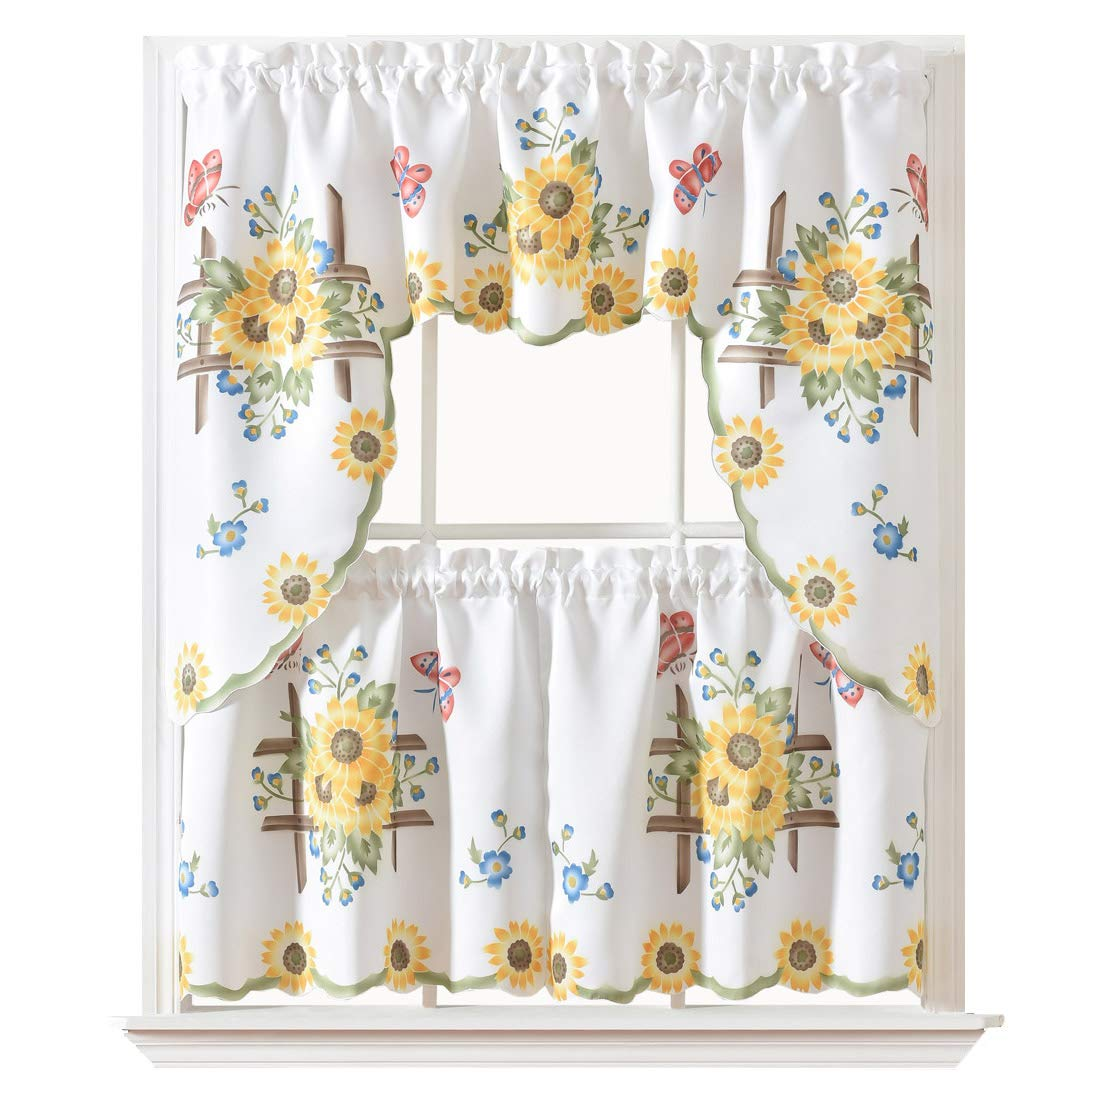 """GOHD - 3pcs Kitchen Curtain/Cafe Curtain/Swag & Tiers Set, Air-Brushed by Hand of Sunflower & Butterfly Design on Thick Satin Fabric (Swag & 24"""" Tiers Set)"""